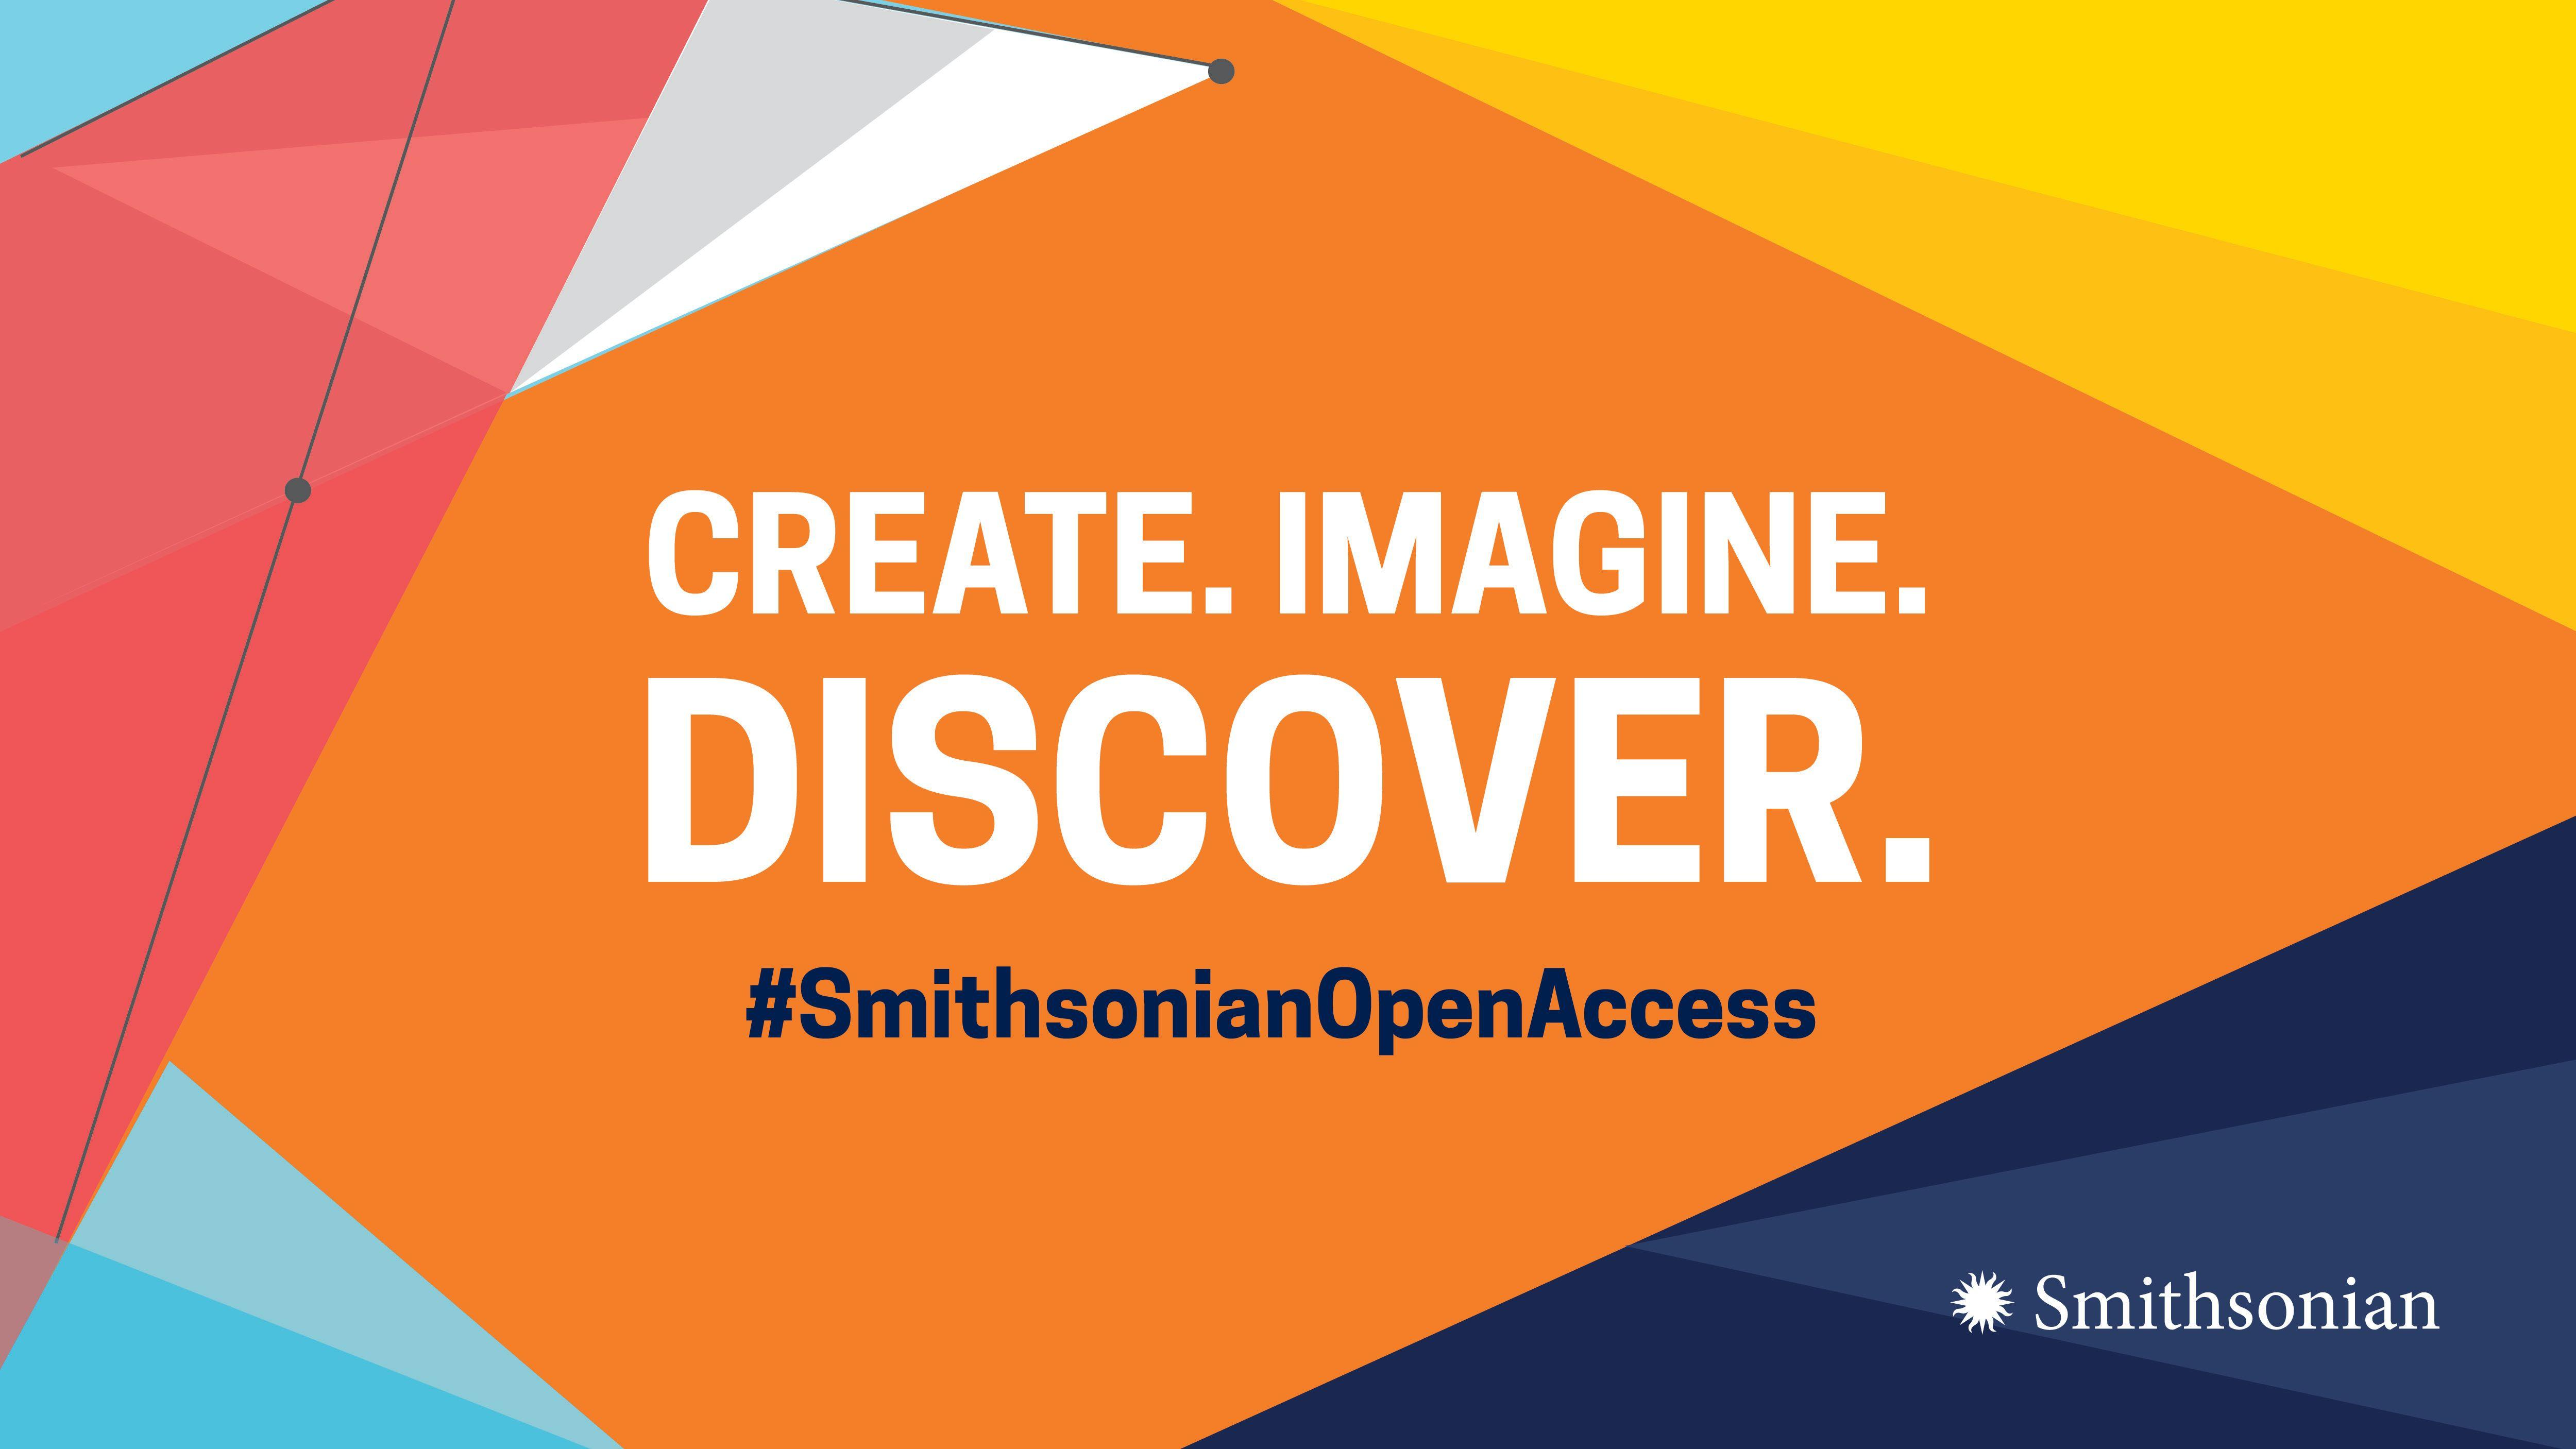 Smithsonian Open Access